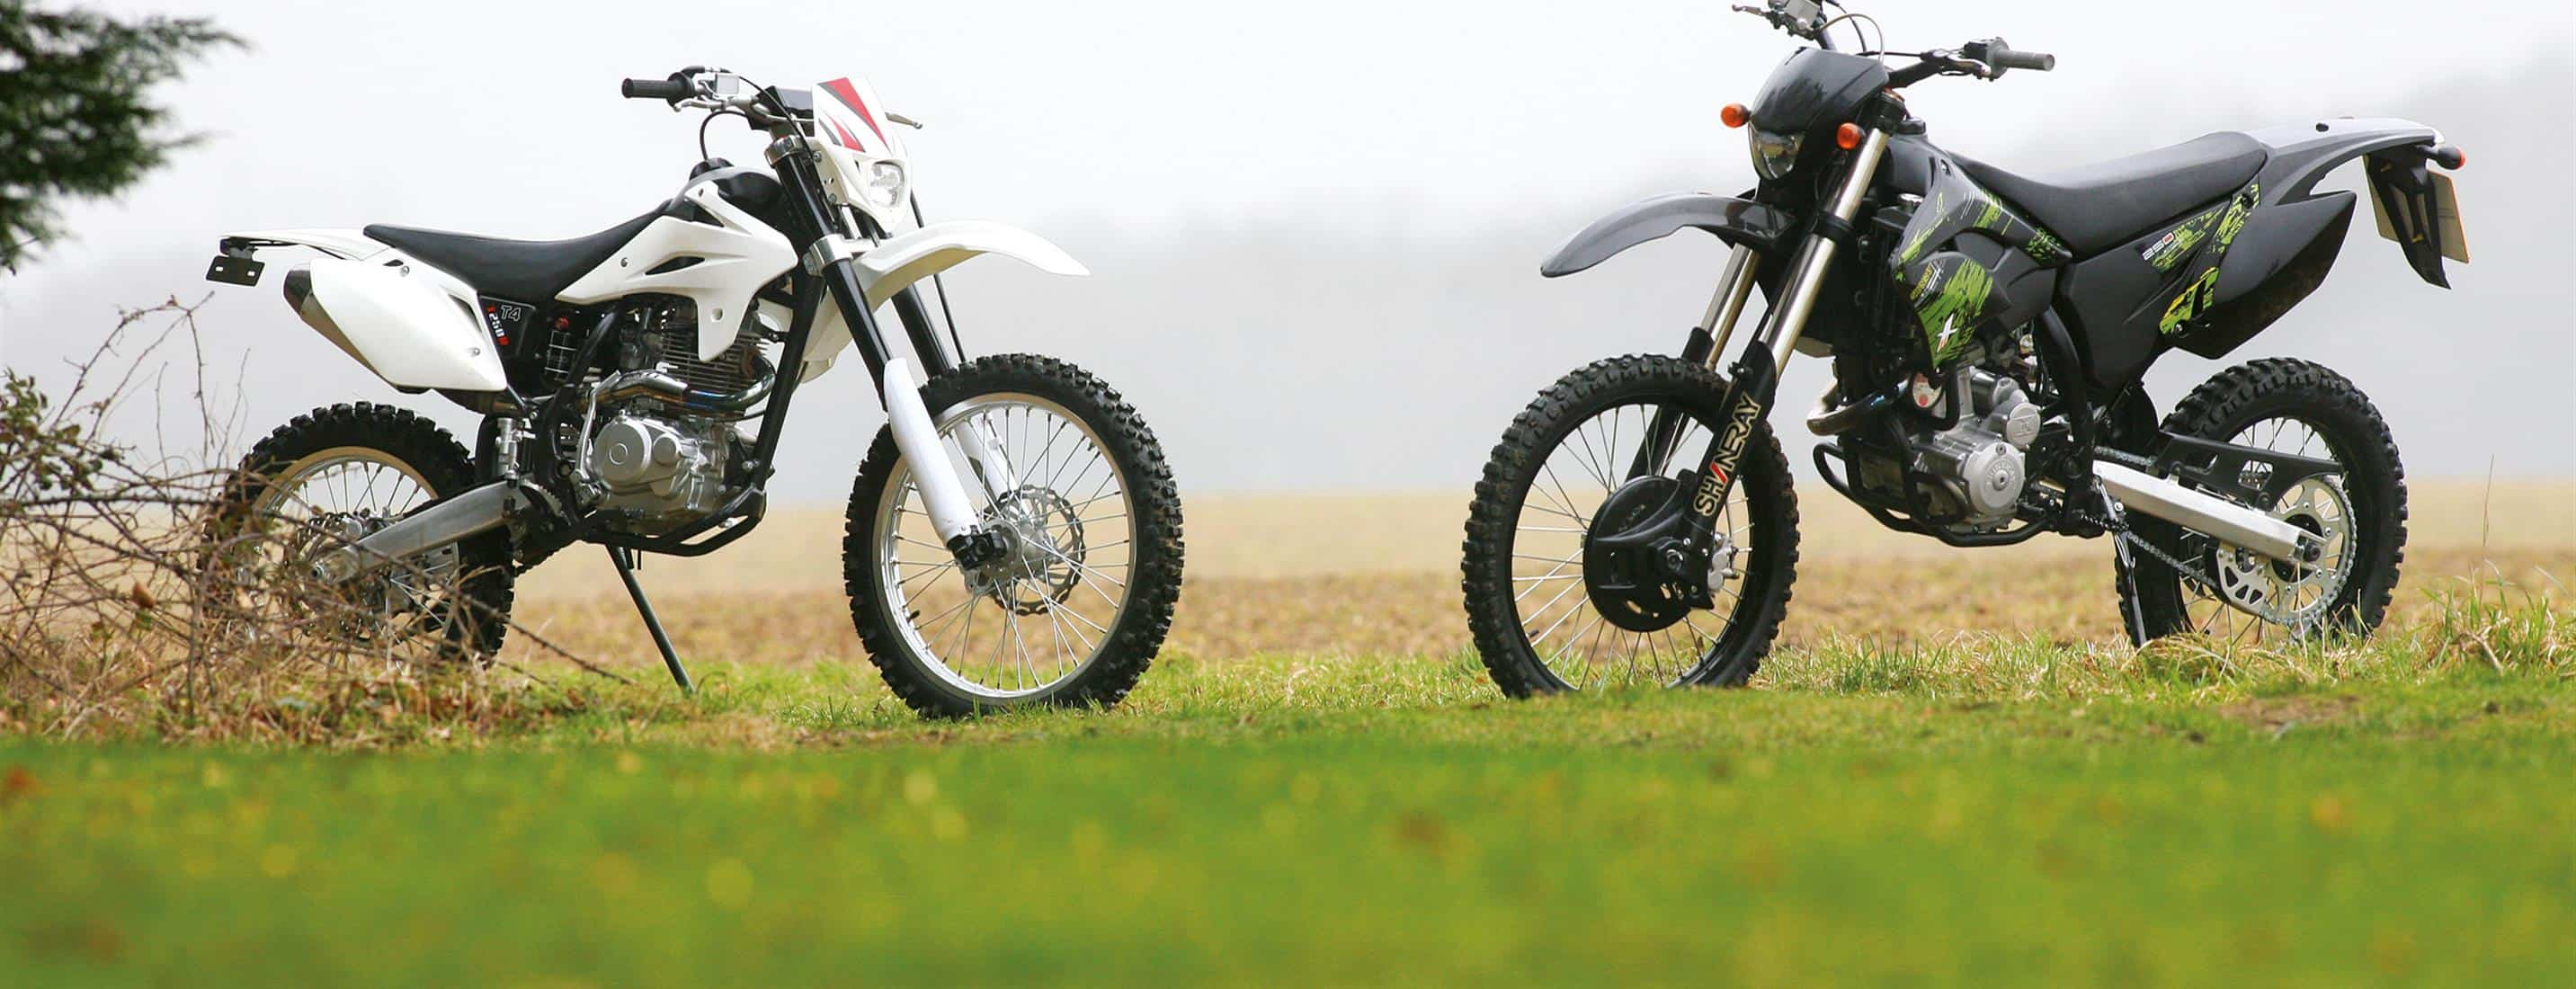 2011 SHINERAY XY250GY-2 VS STOMP T4